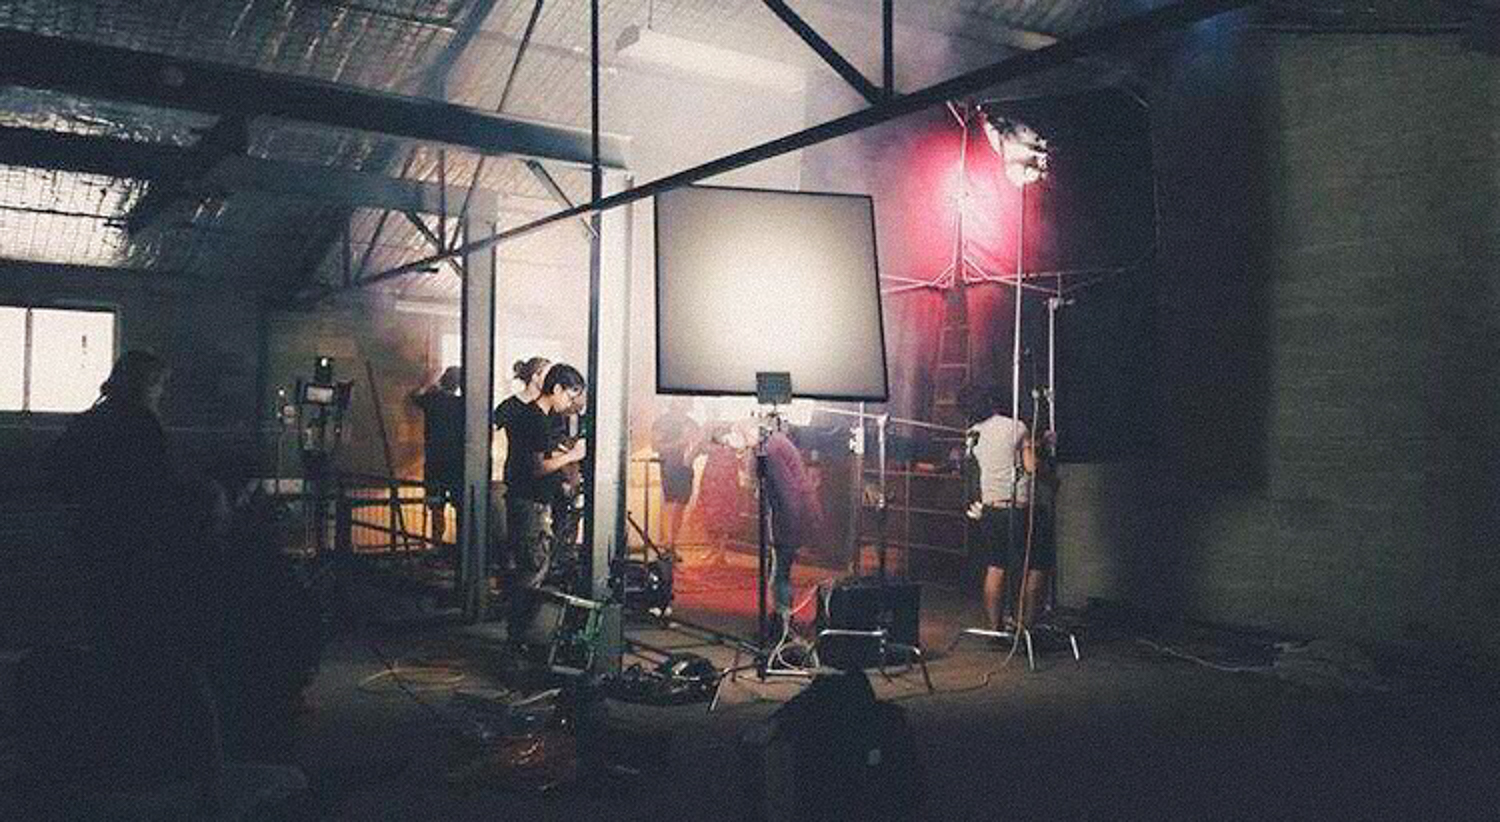 The crew setting up for the dance scene.